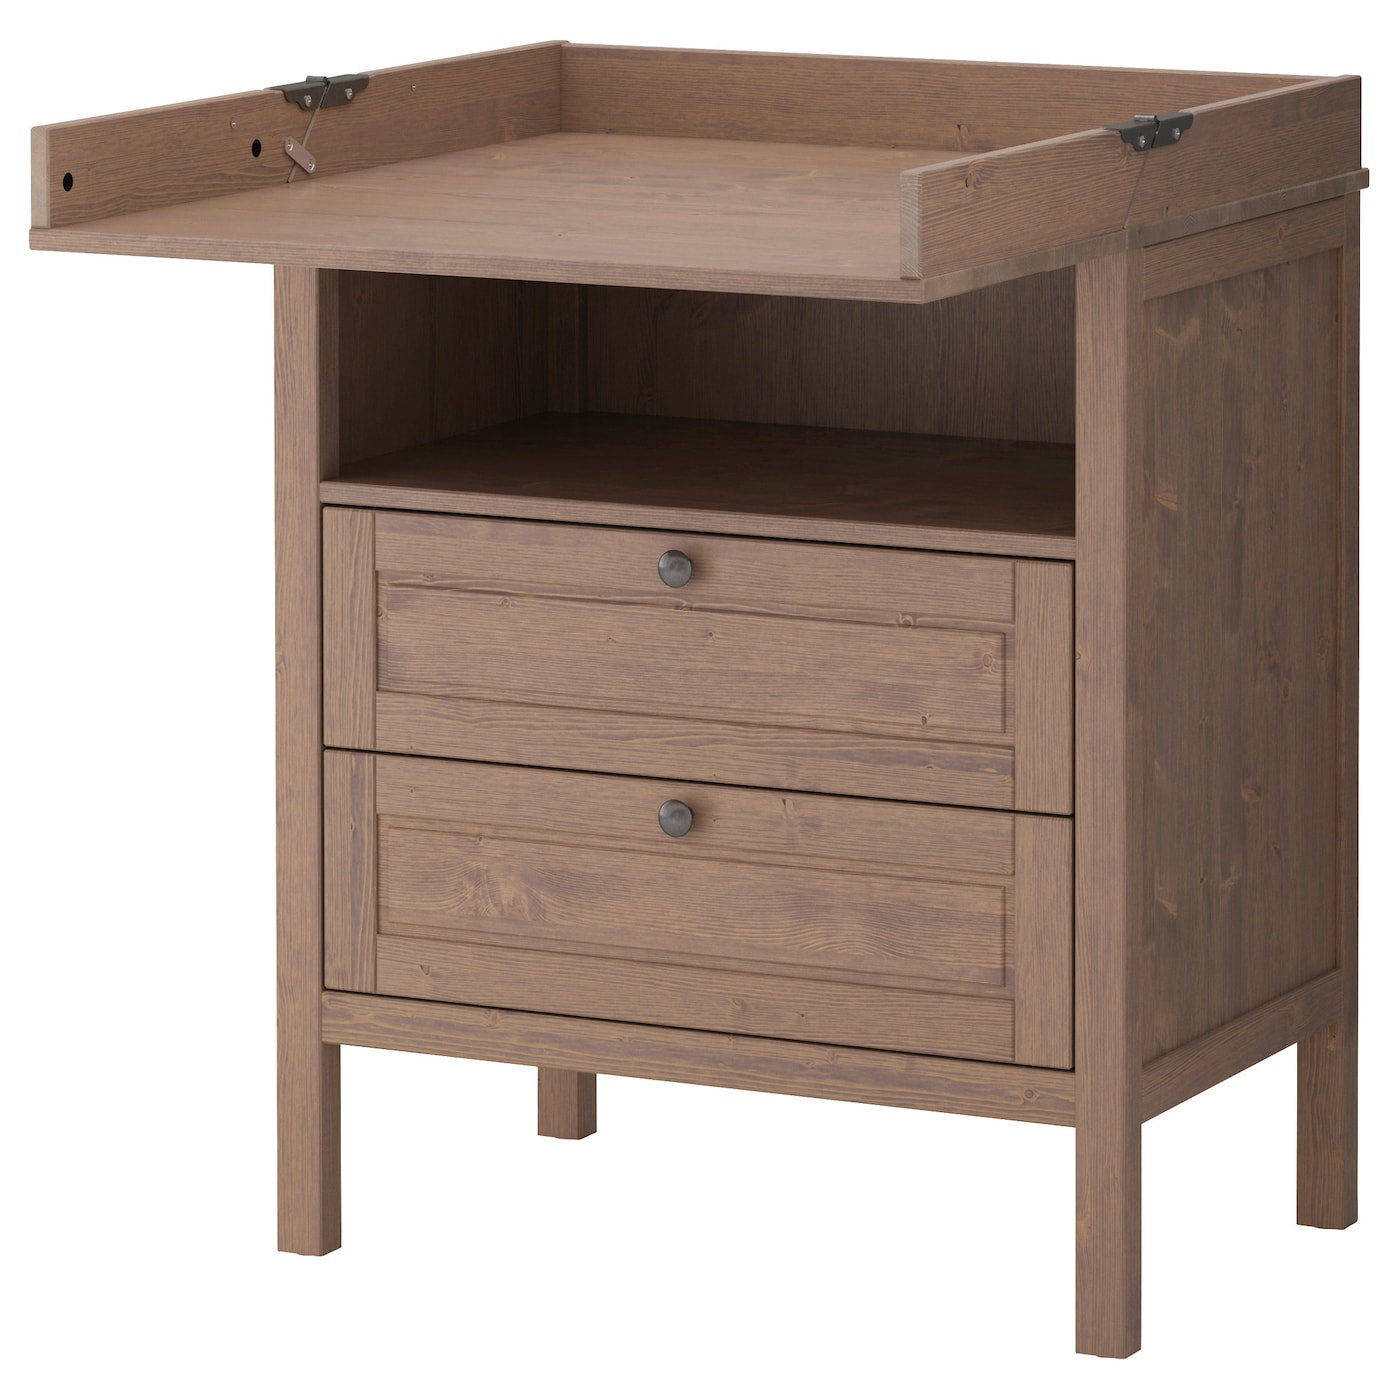 sundvik changing table chest of drawers grey brown ikea. Black Bedroom Furniture Sets. Home Design Ideas